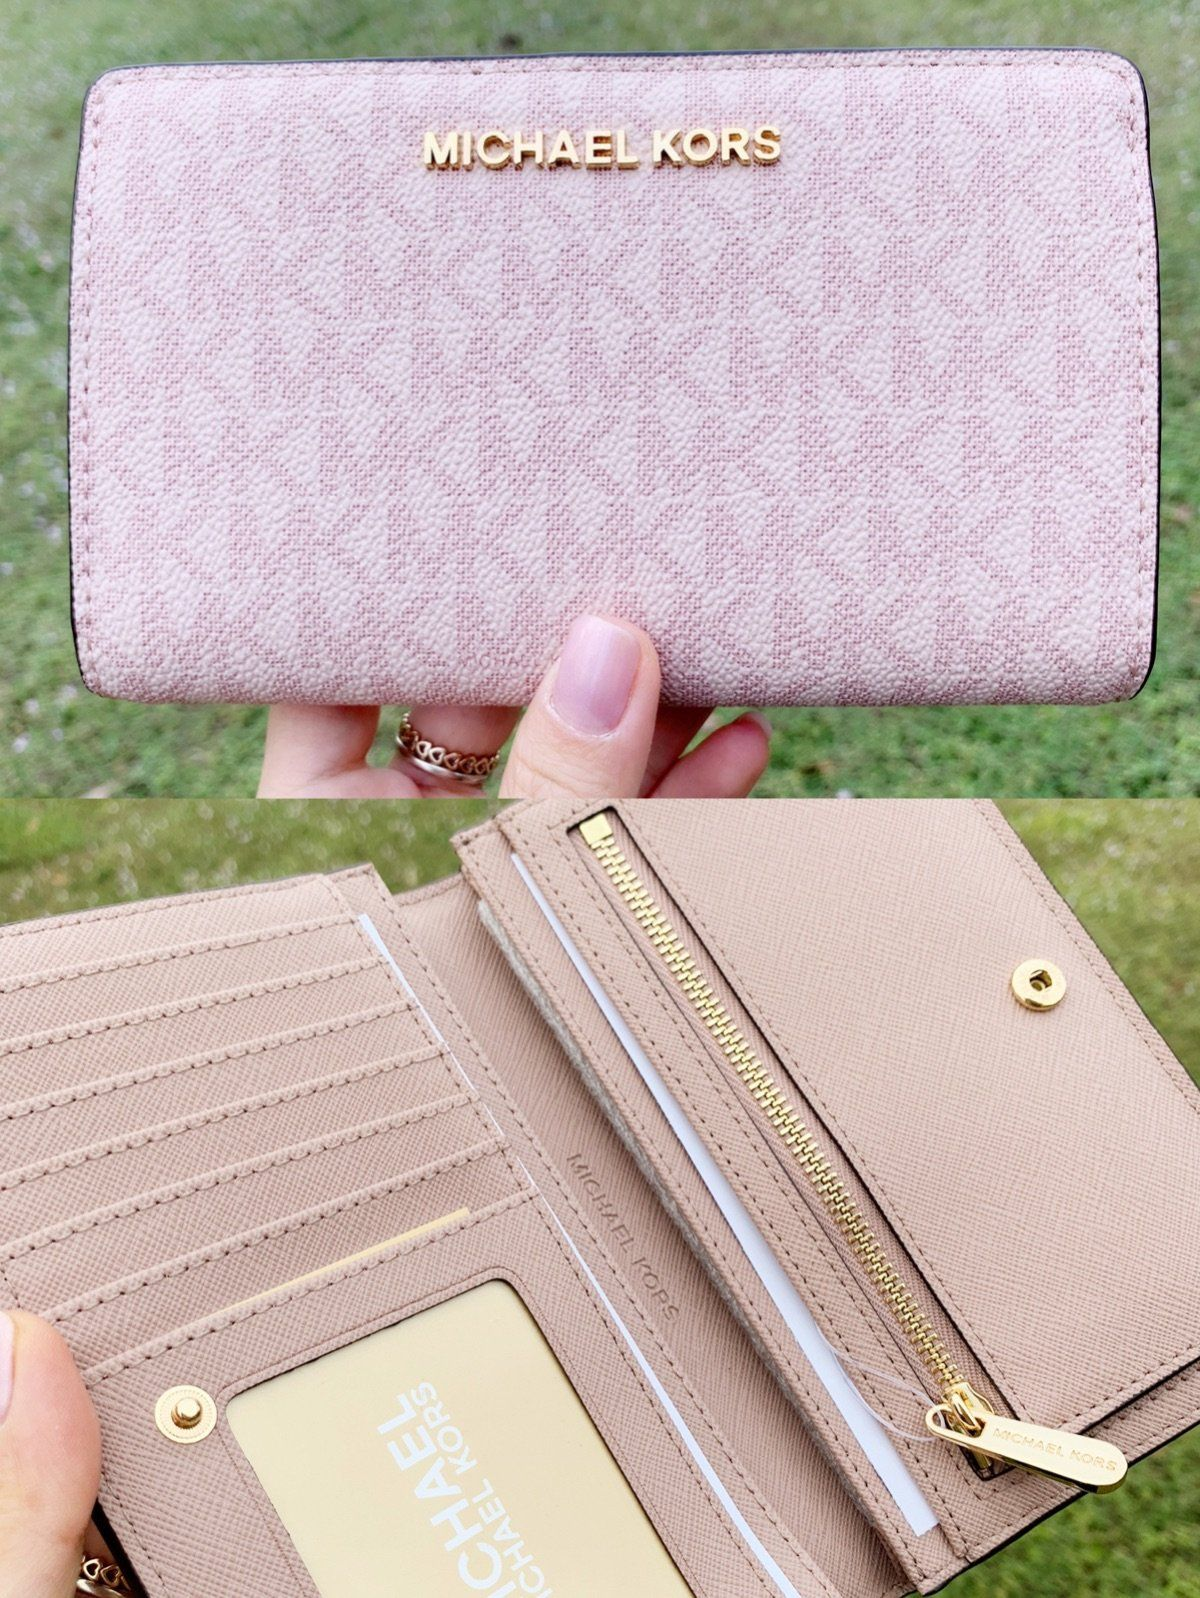 a53bfeeaae Michael Kors Jet Set Travel PVC Slim Bifold Wallet Fawn MK Ballet Pink  #poshfashion #rated #poshpackages #GabysBags #mercariapp #ebaystore  #topratedseller ...